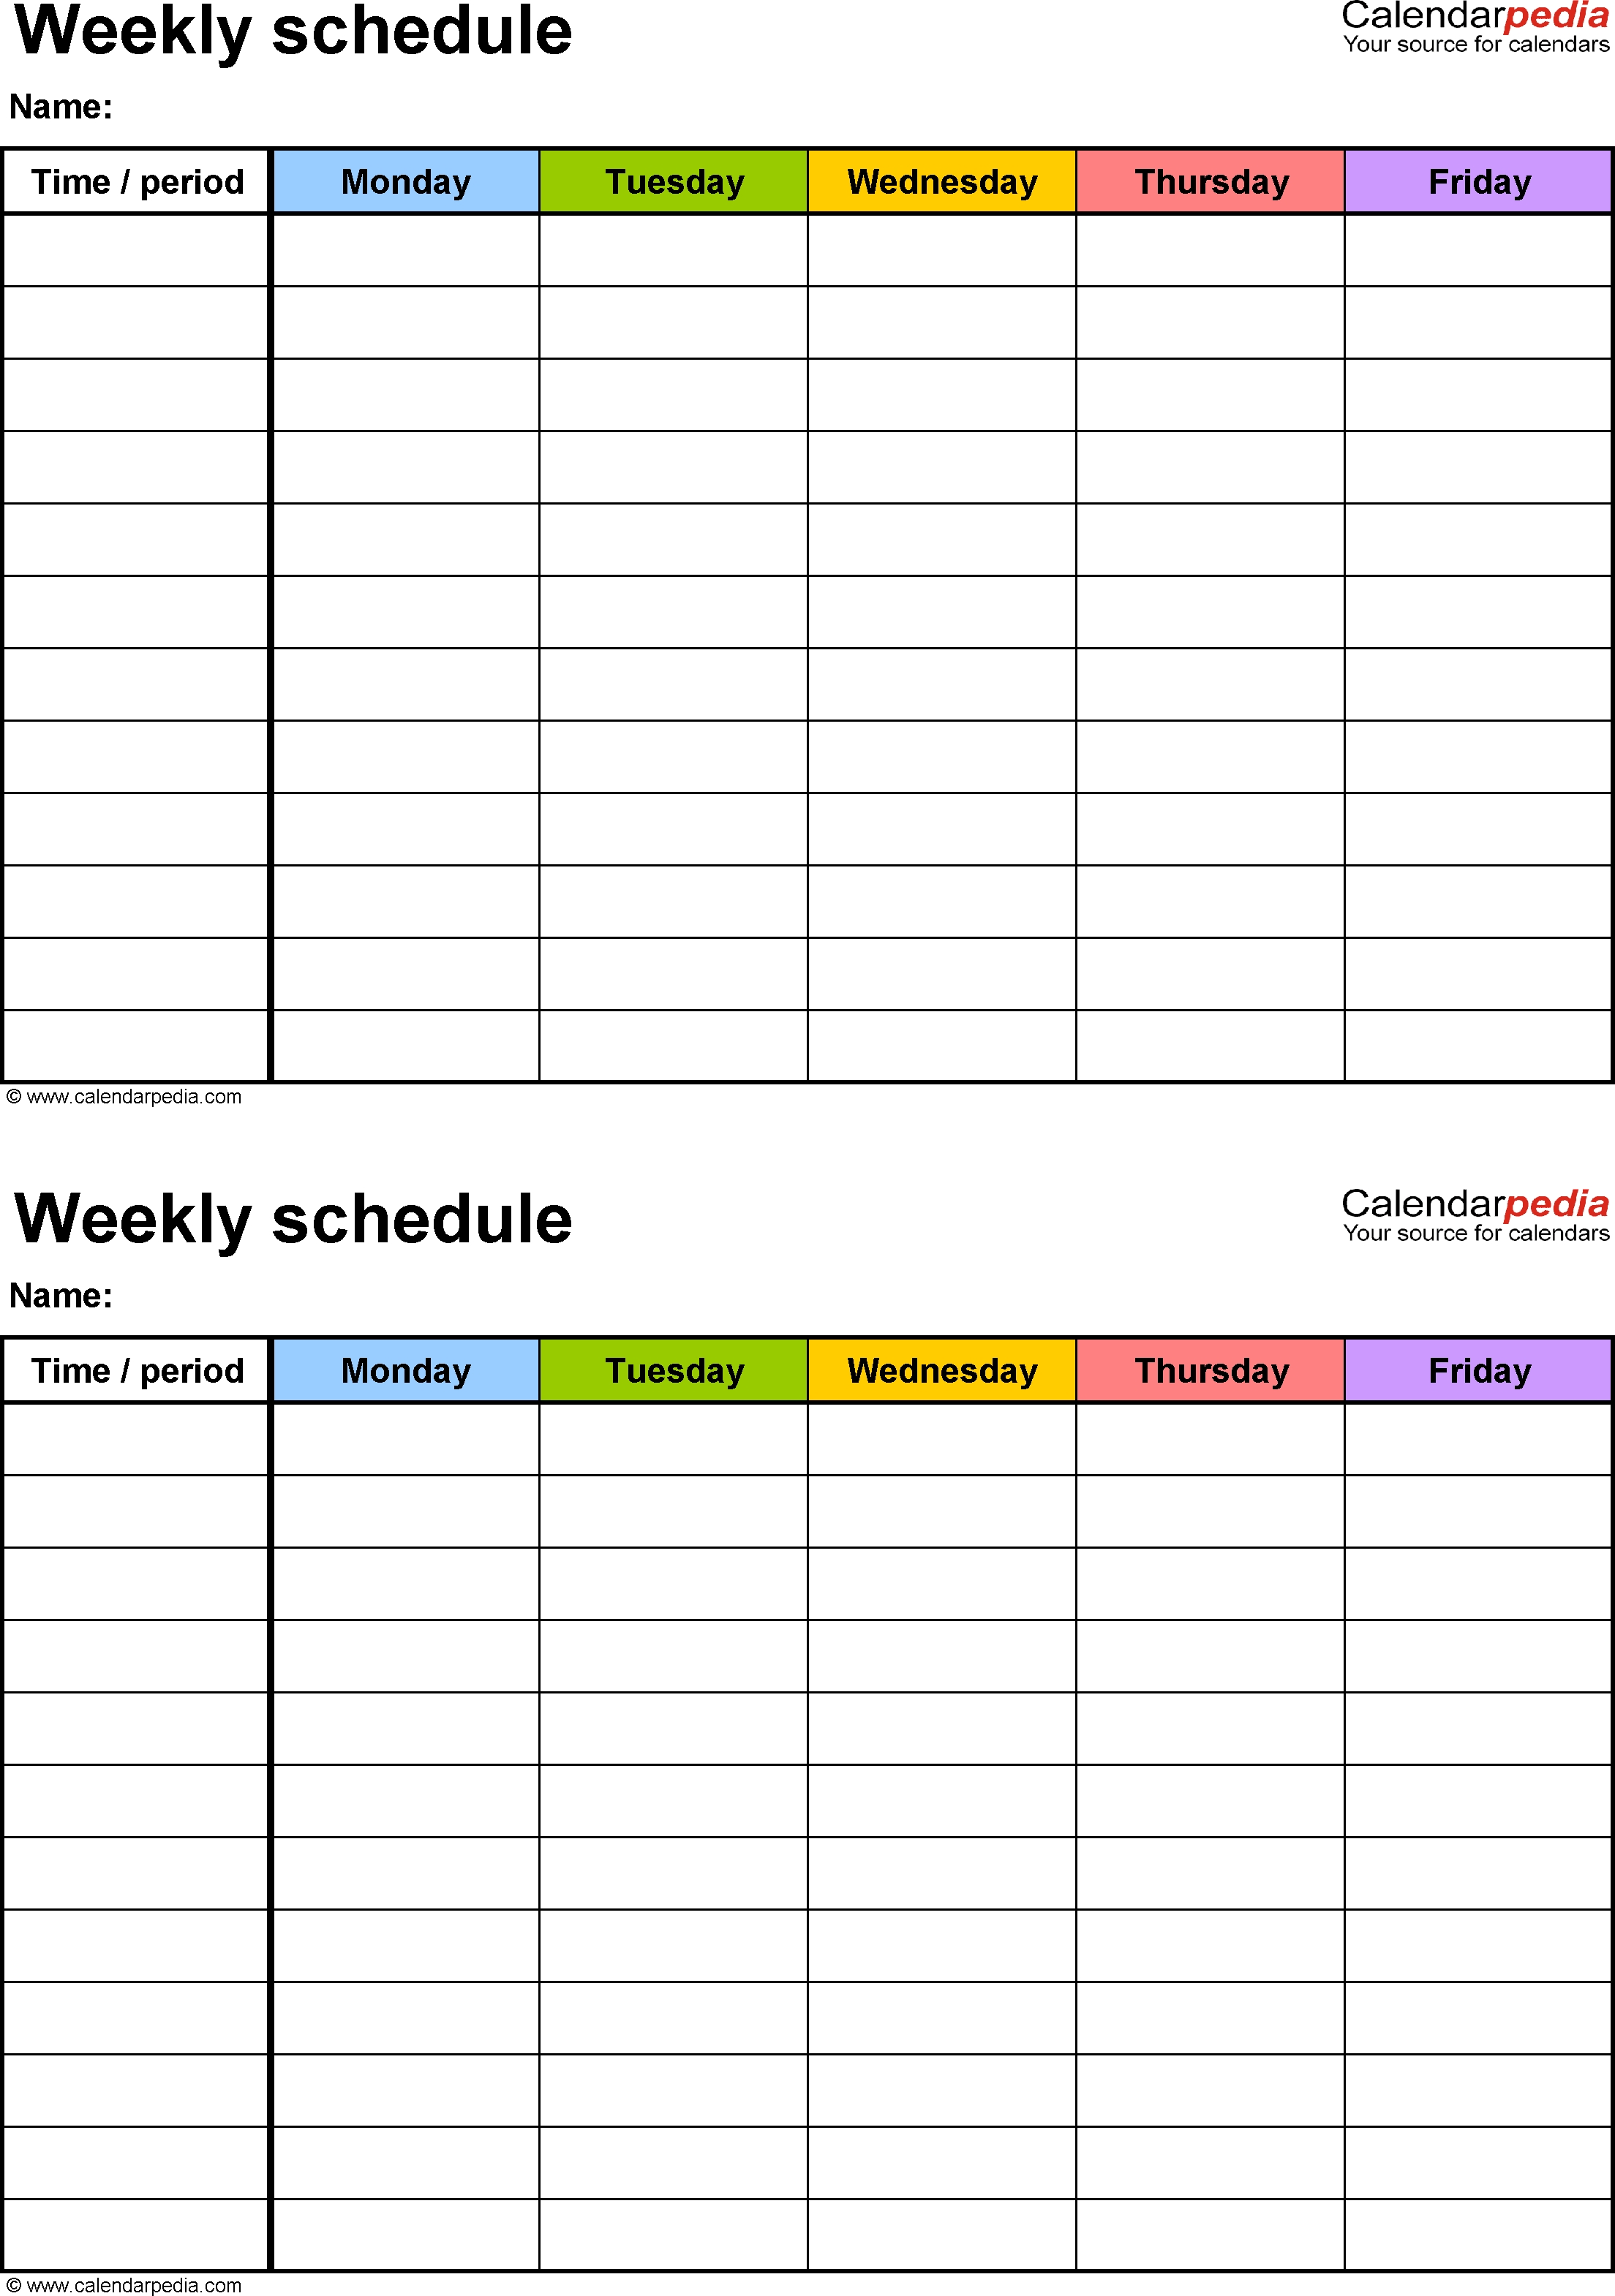 Weekly Schedule Template For Excel Version 3: 2 Schedules On One inside 5 Day Weekly Schedule Template